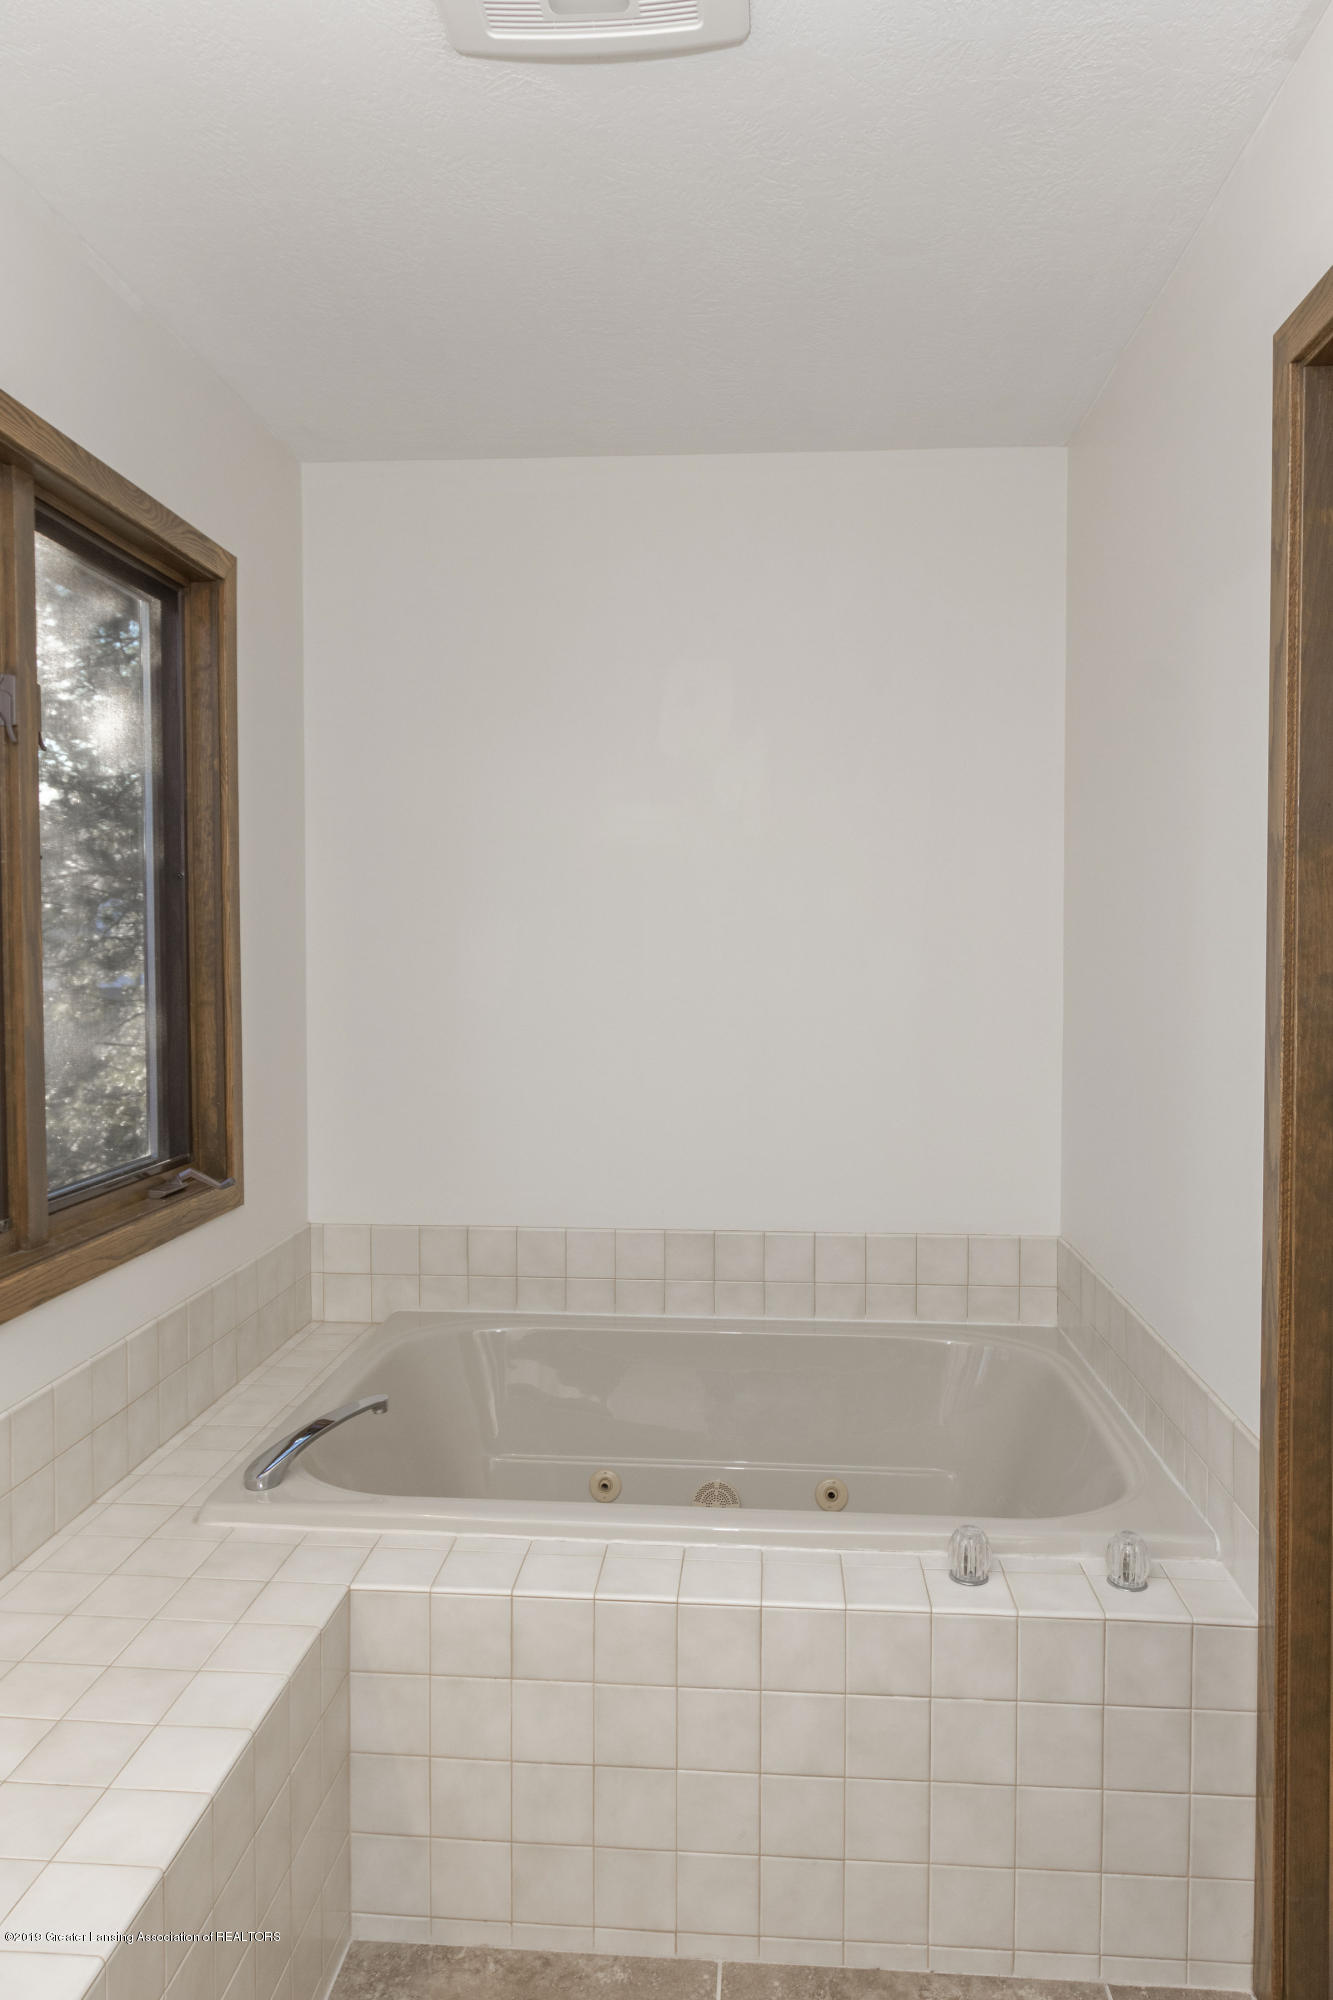 2543 Dustin Rd - Master bath tub - 39